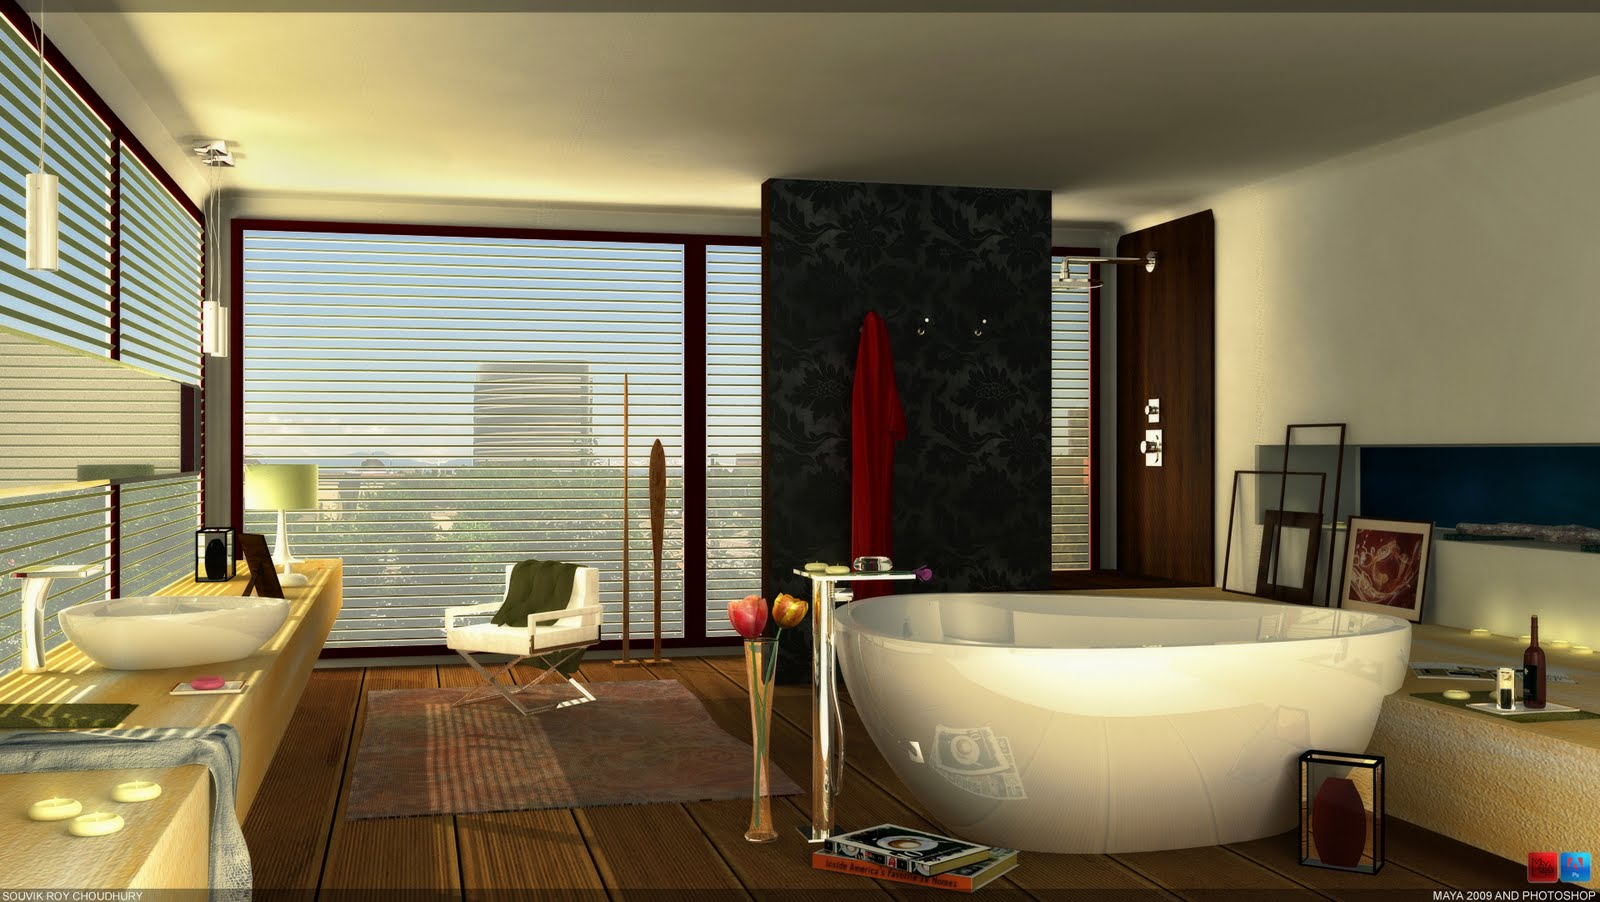 Hans Ghroe Axor Massaud Bathroom   Modeled In Maya, Rendered In Mental Ray  And Post Work In Photoshop.